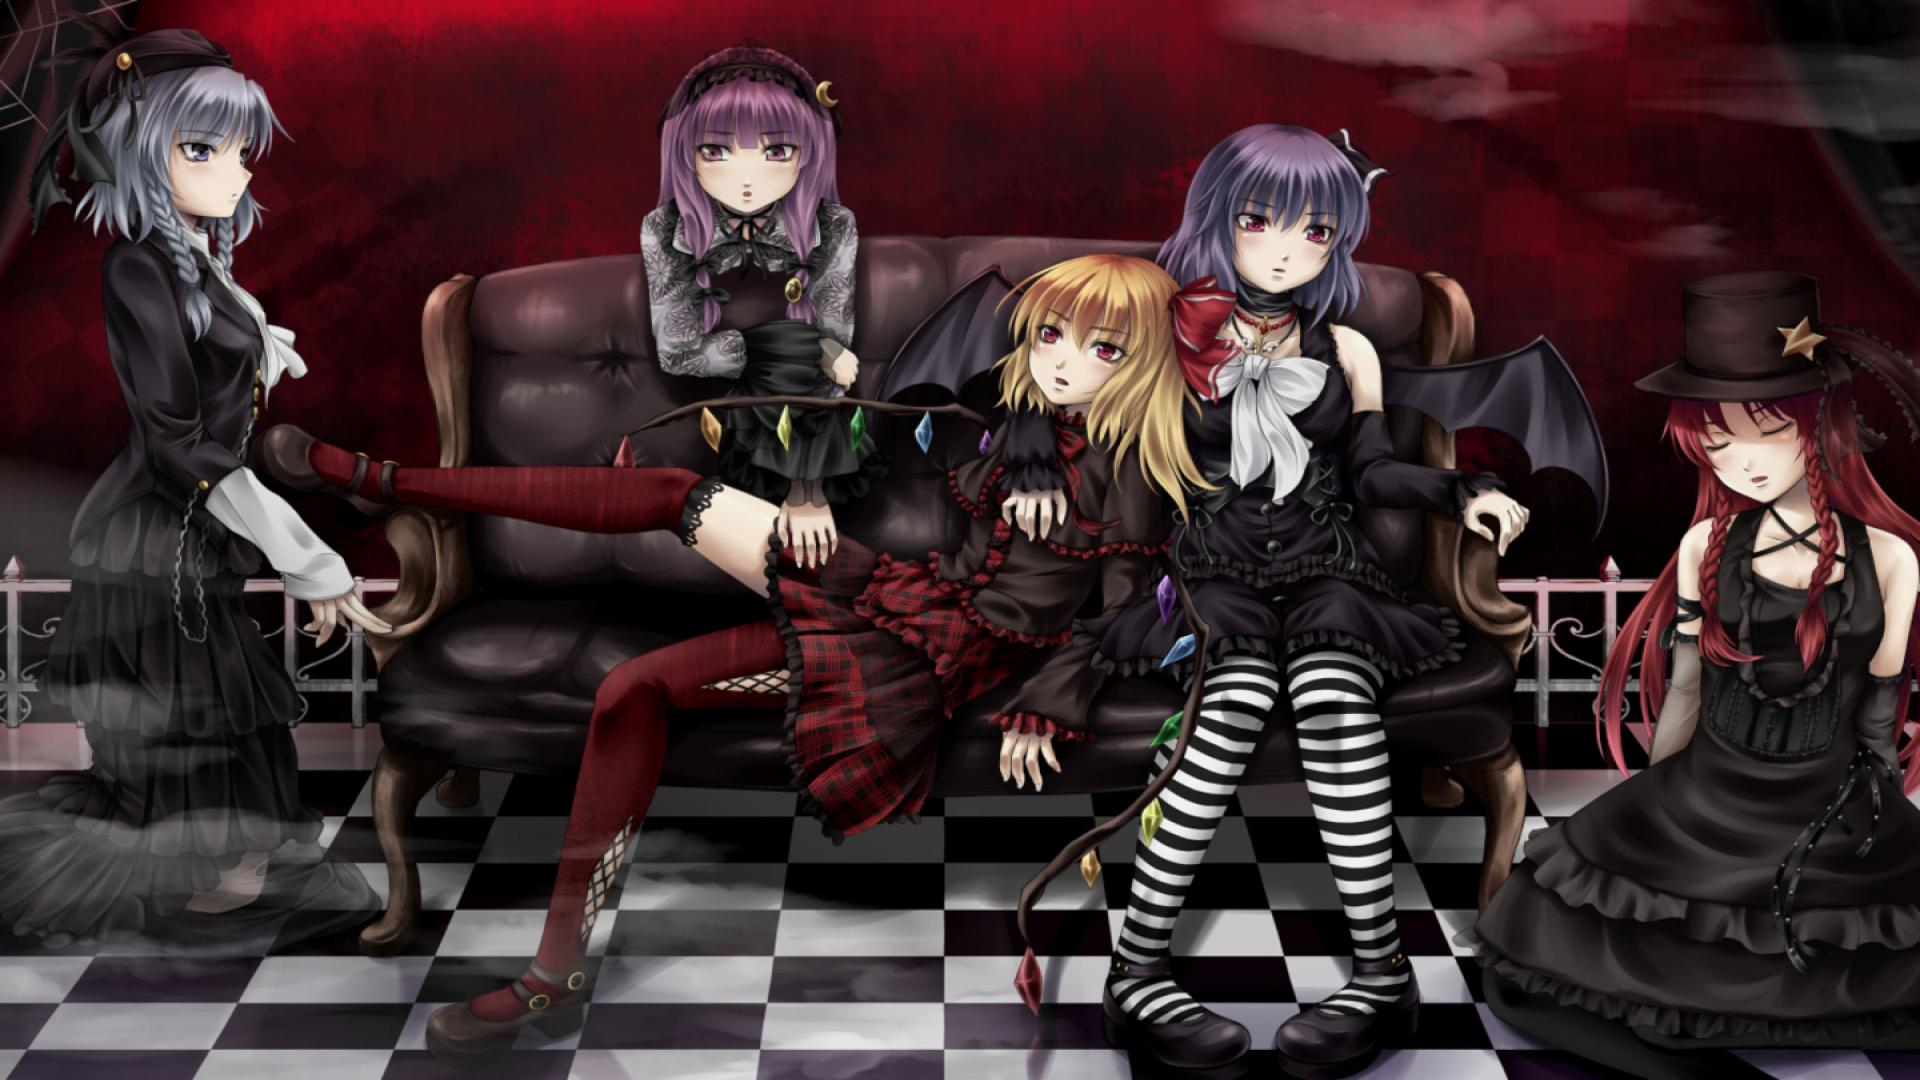 Photo Collection Gothic Anime Girls Wallpapers